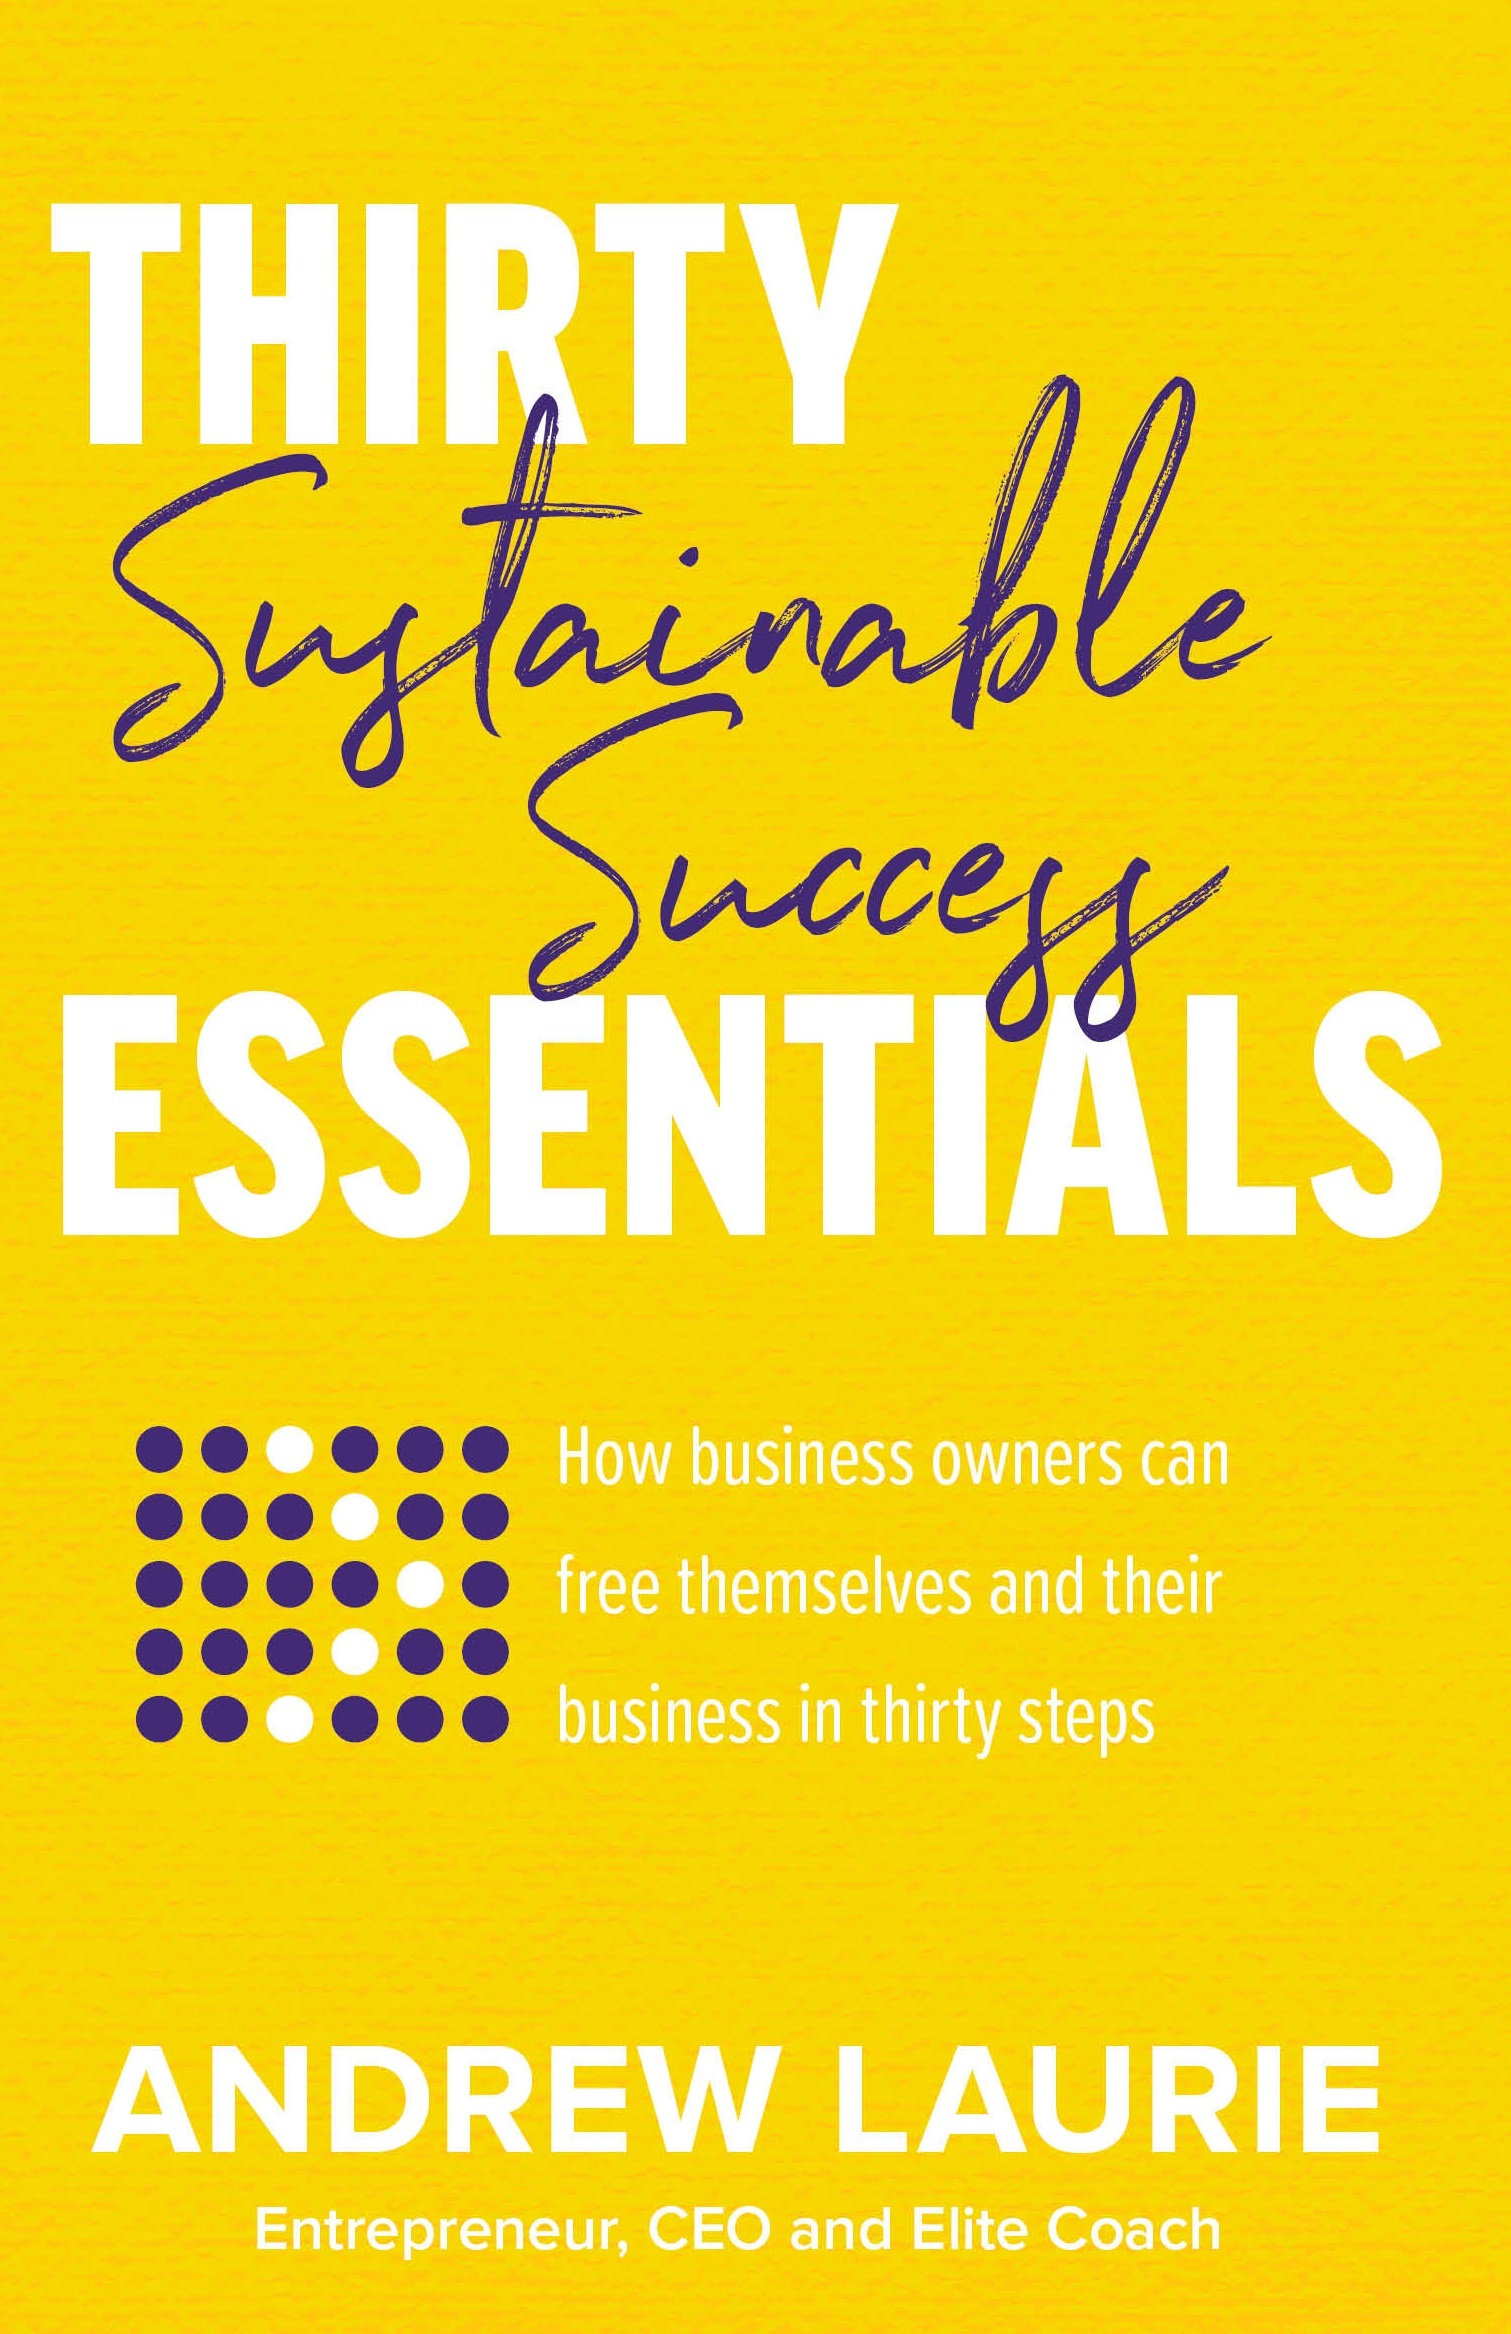 Thirty Essentials Sustainable Success_cover_5A.jpg